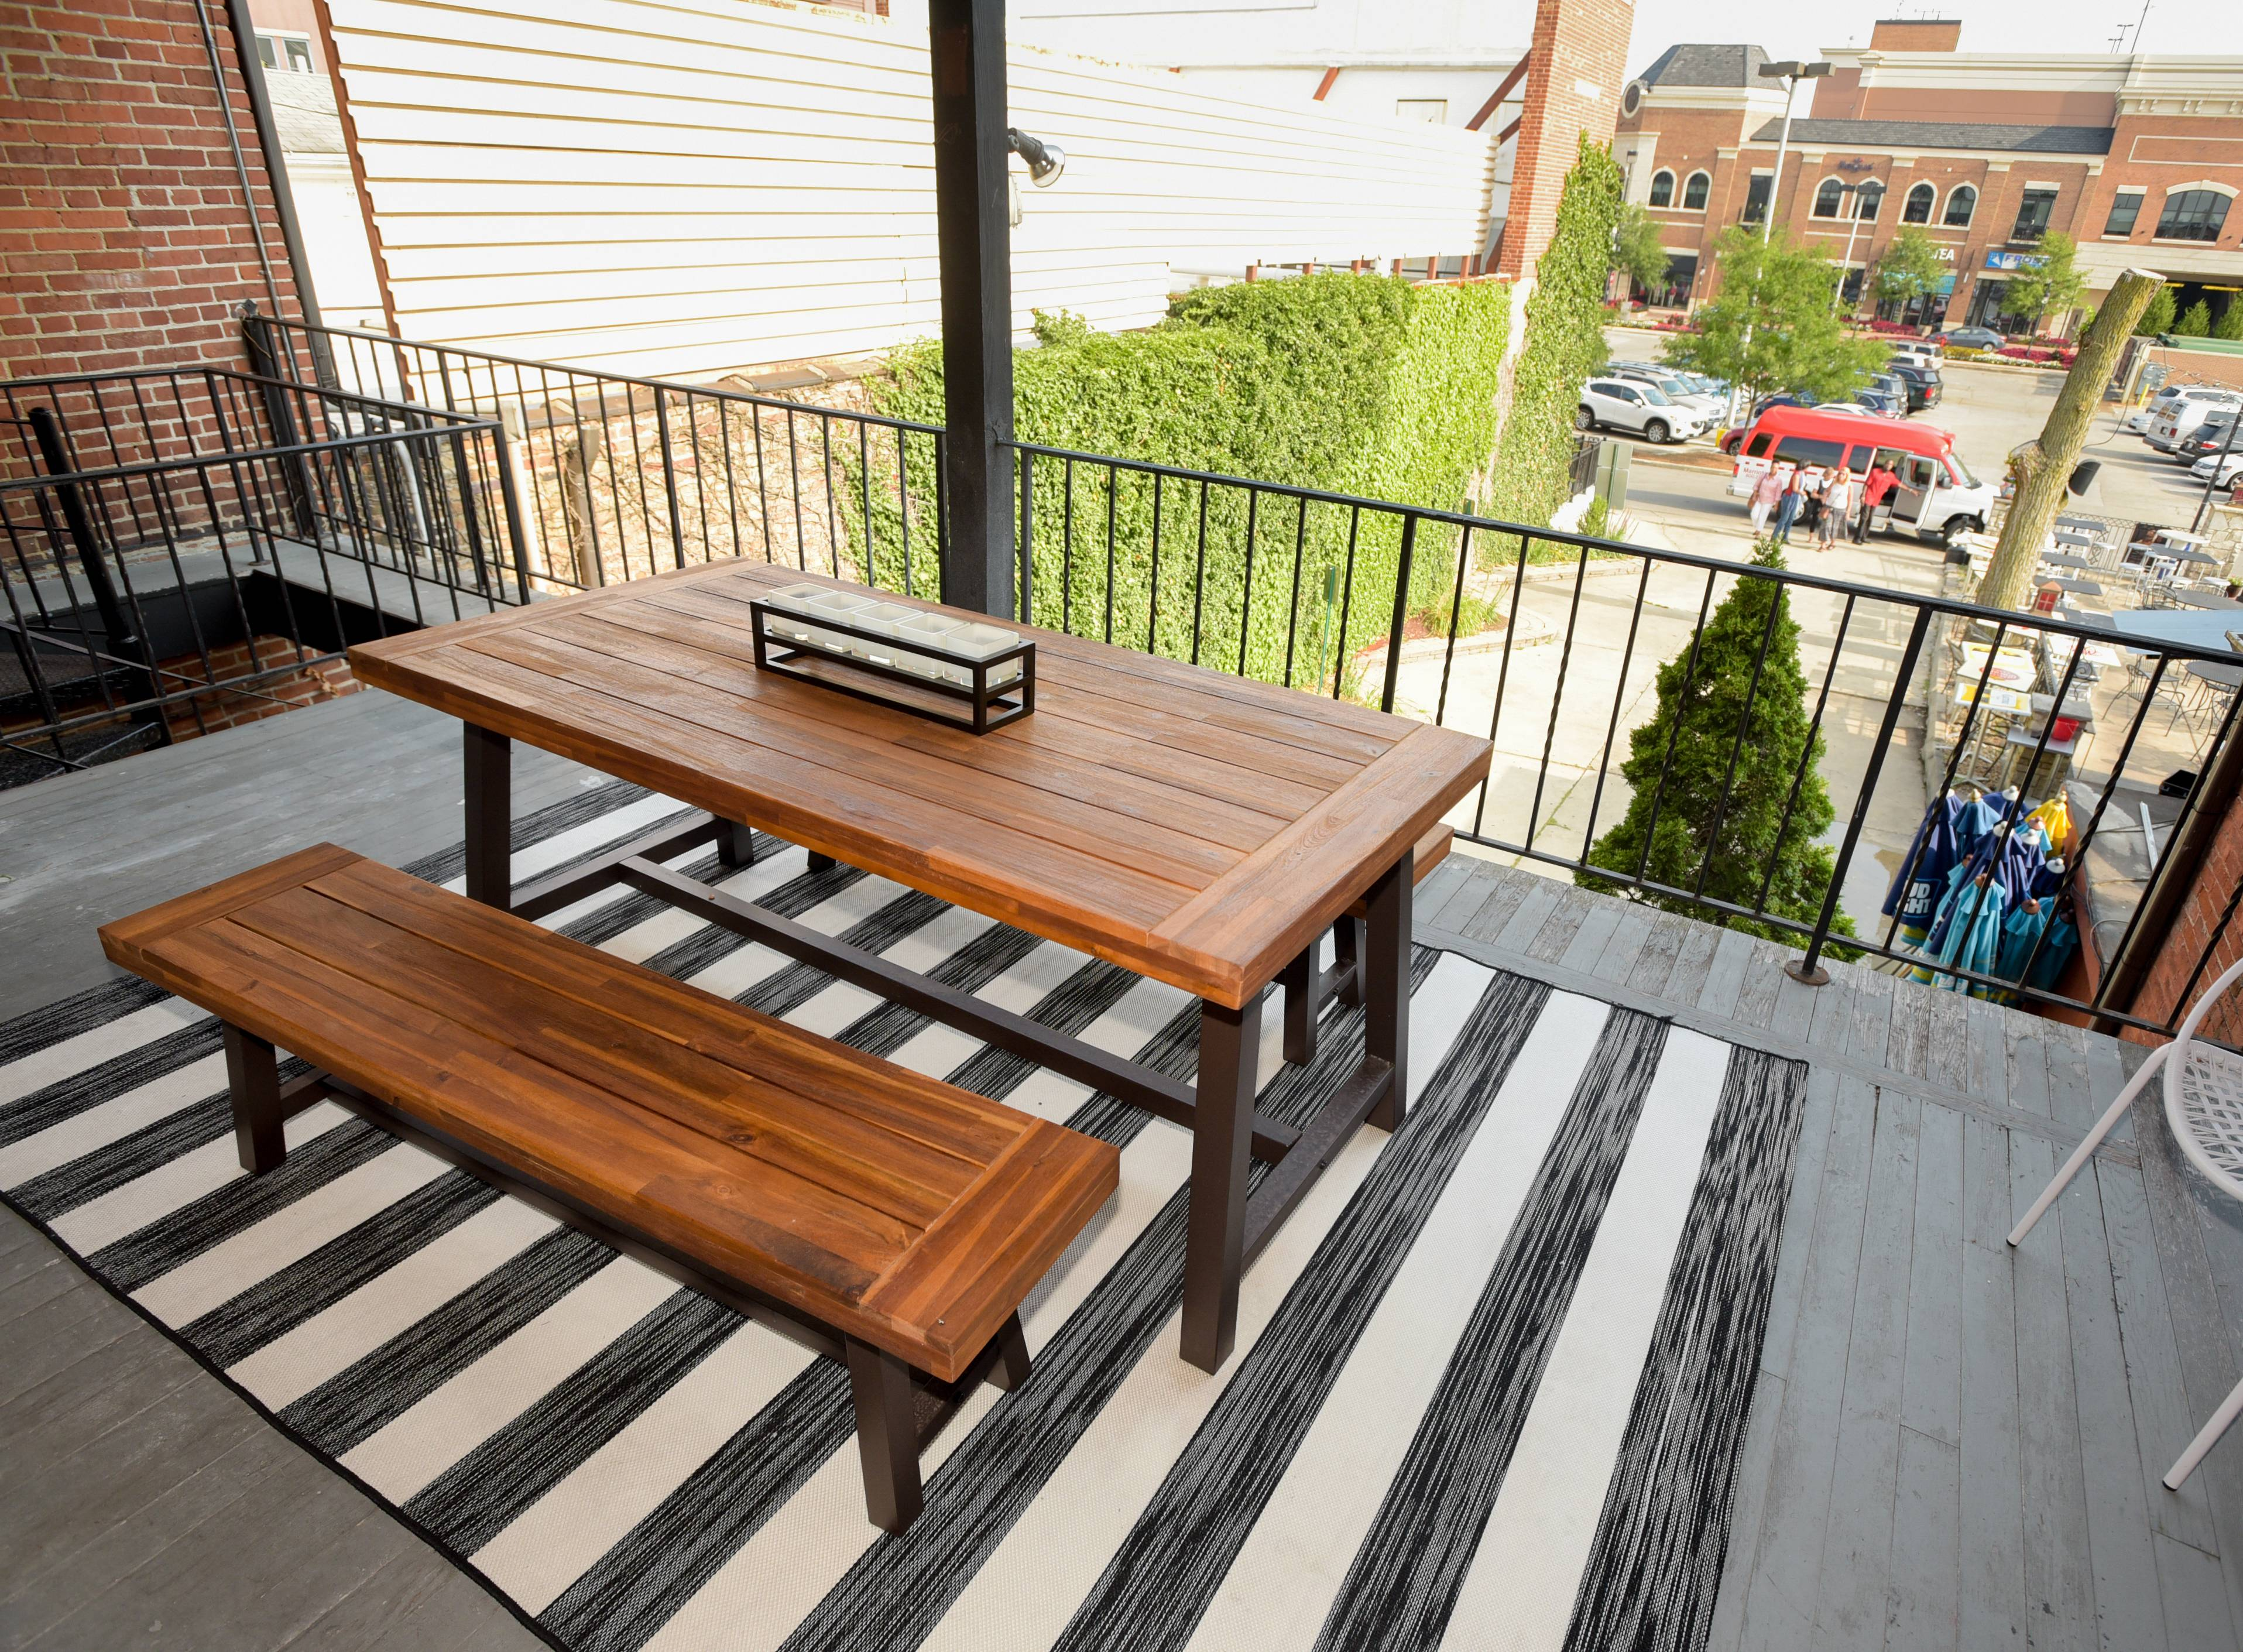 A patio on the north side of the Klique co-working space in downtown Naperville allows workers to take their projects outside or have a lunch break. The space targeted toward female entrepreneurs opened in April and has room for between 10 and 15 co-workers.